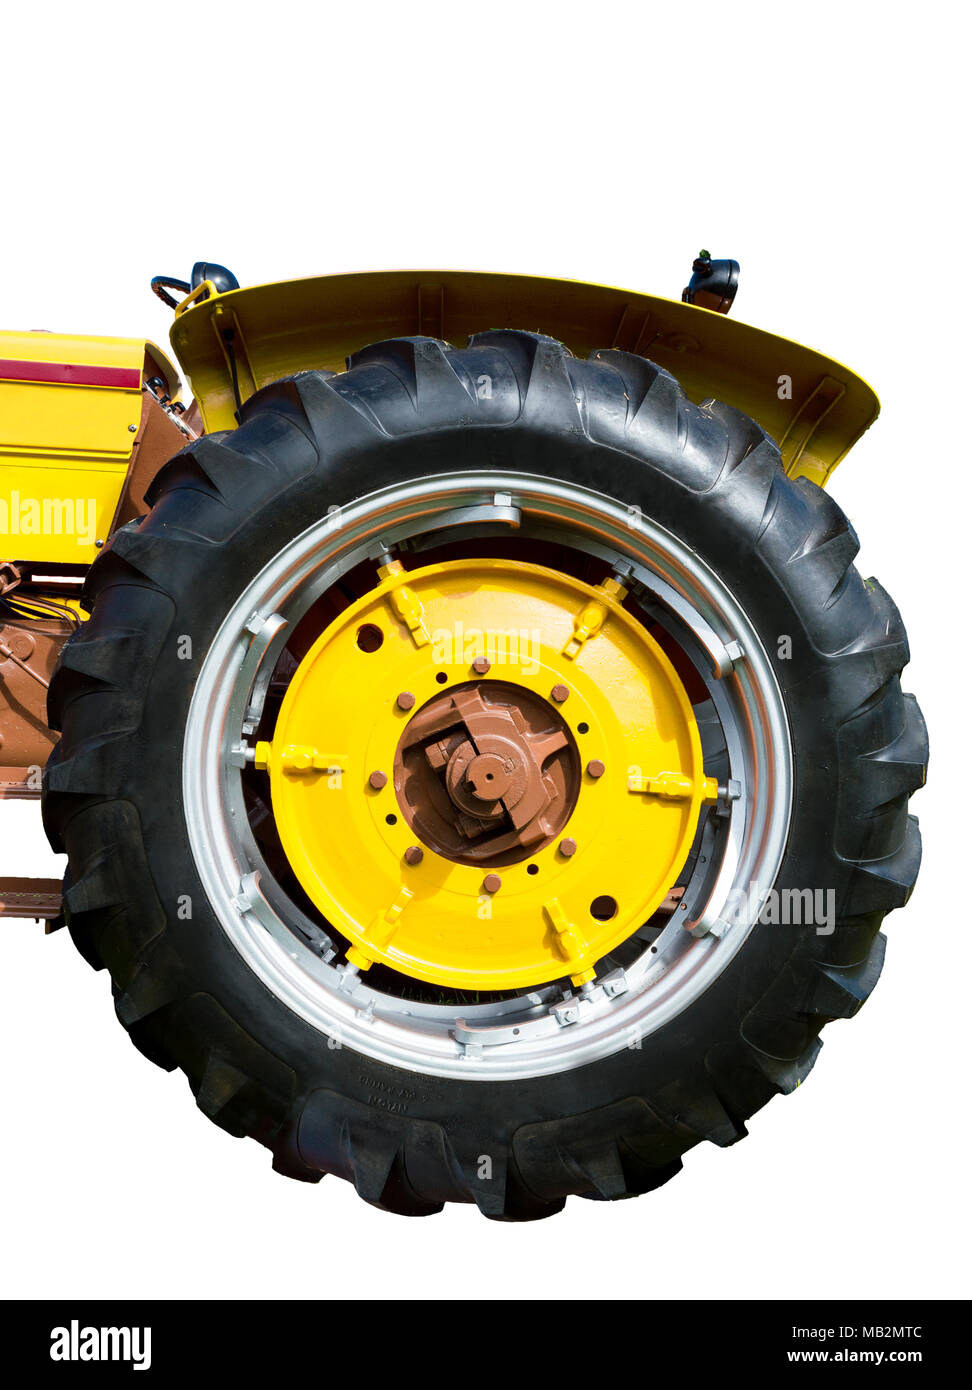 Vertical close-up shot of a big yellow tractor tire. - Stock Image